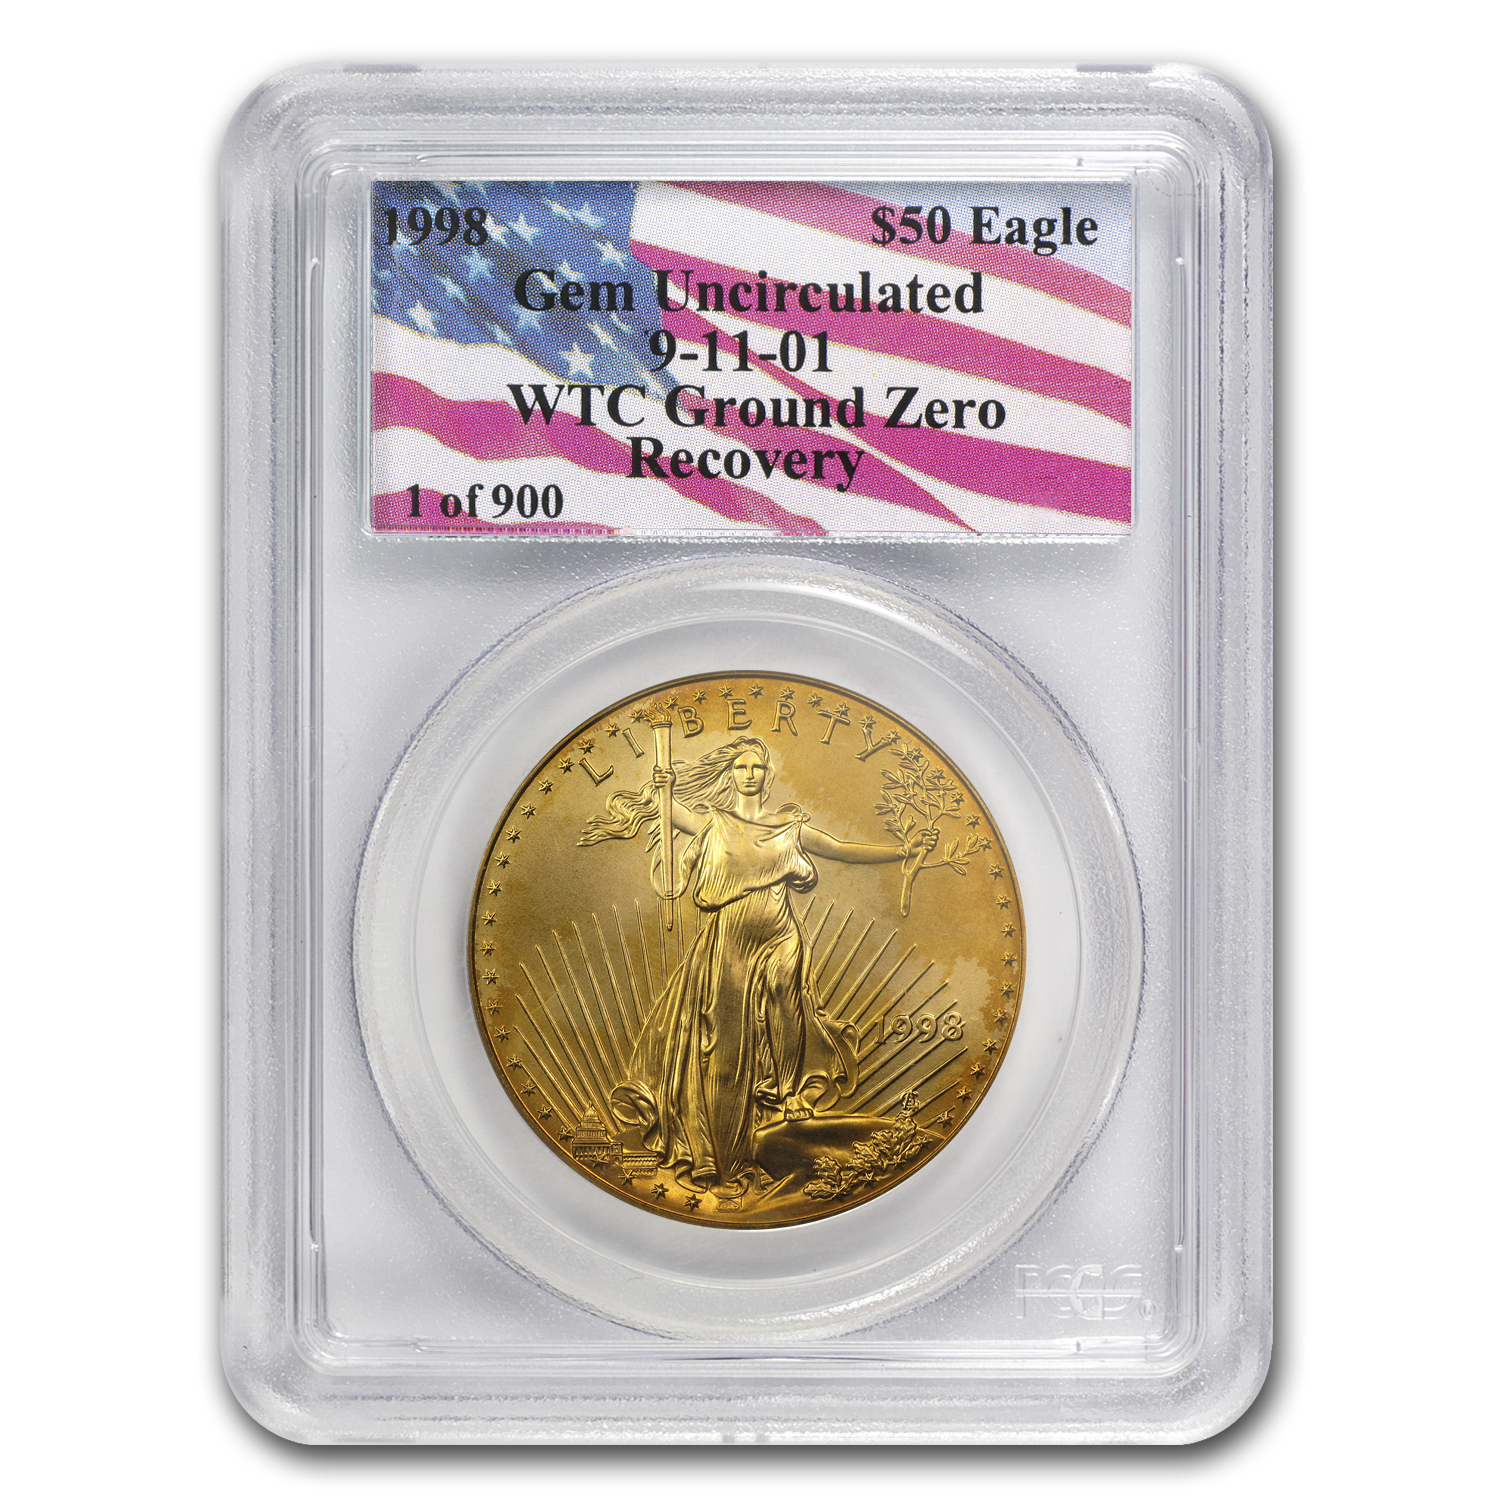 1998 1 oz Gold American Gem Uncirculated PCGS 1 of 900 (WTC)